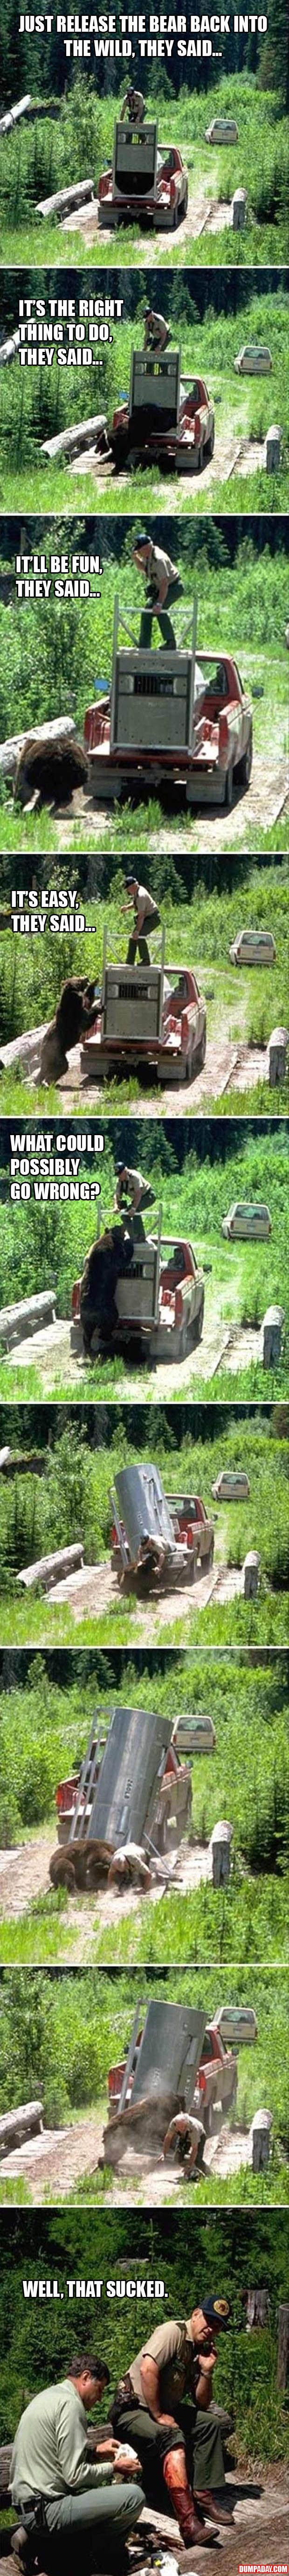 Set A Bear Free, What Could Go Wrong?